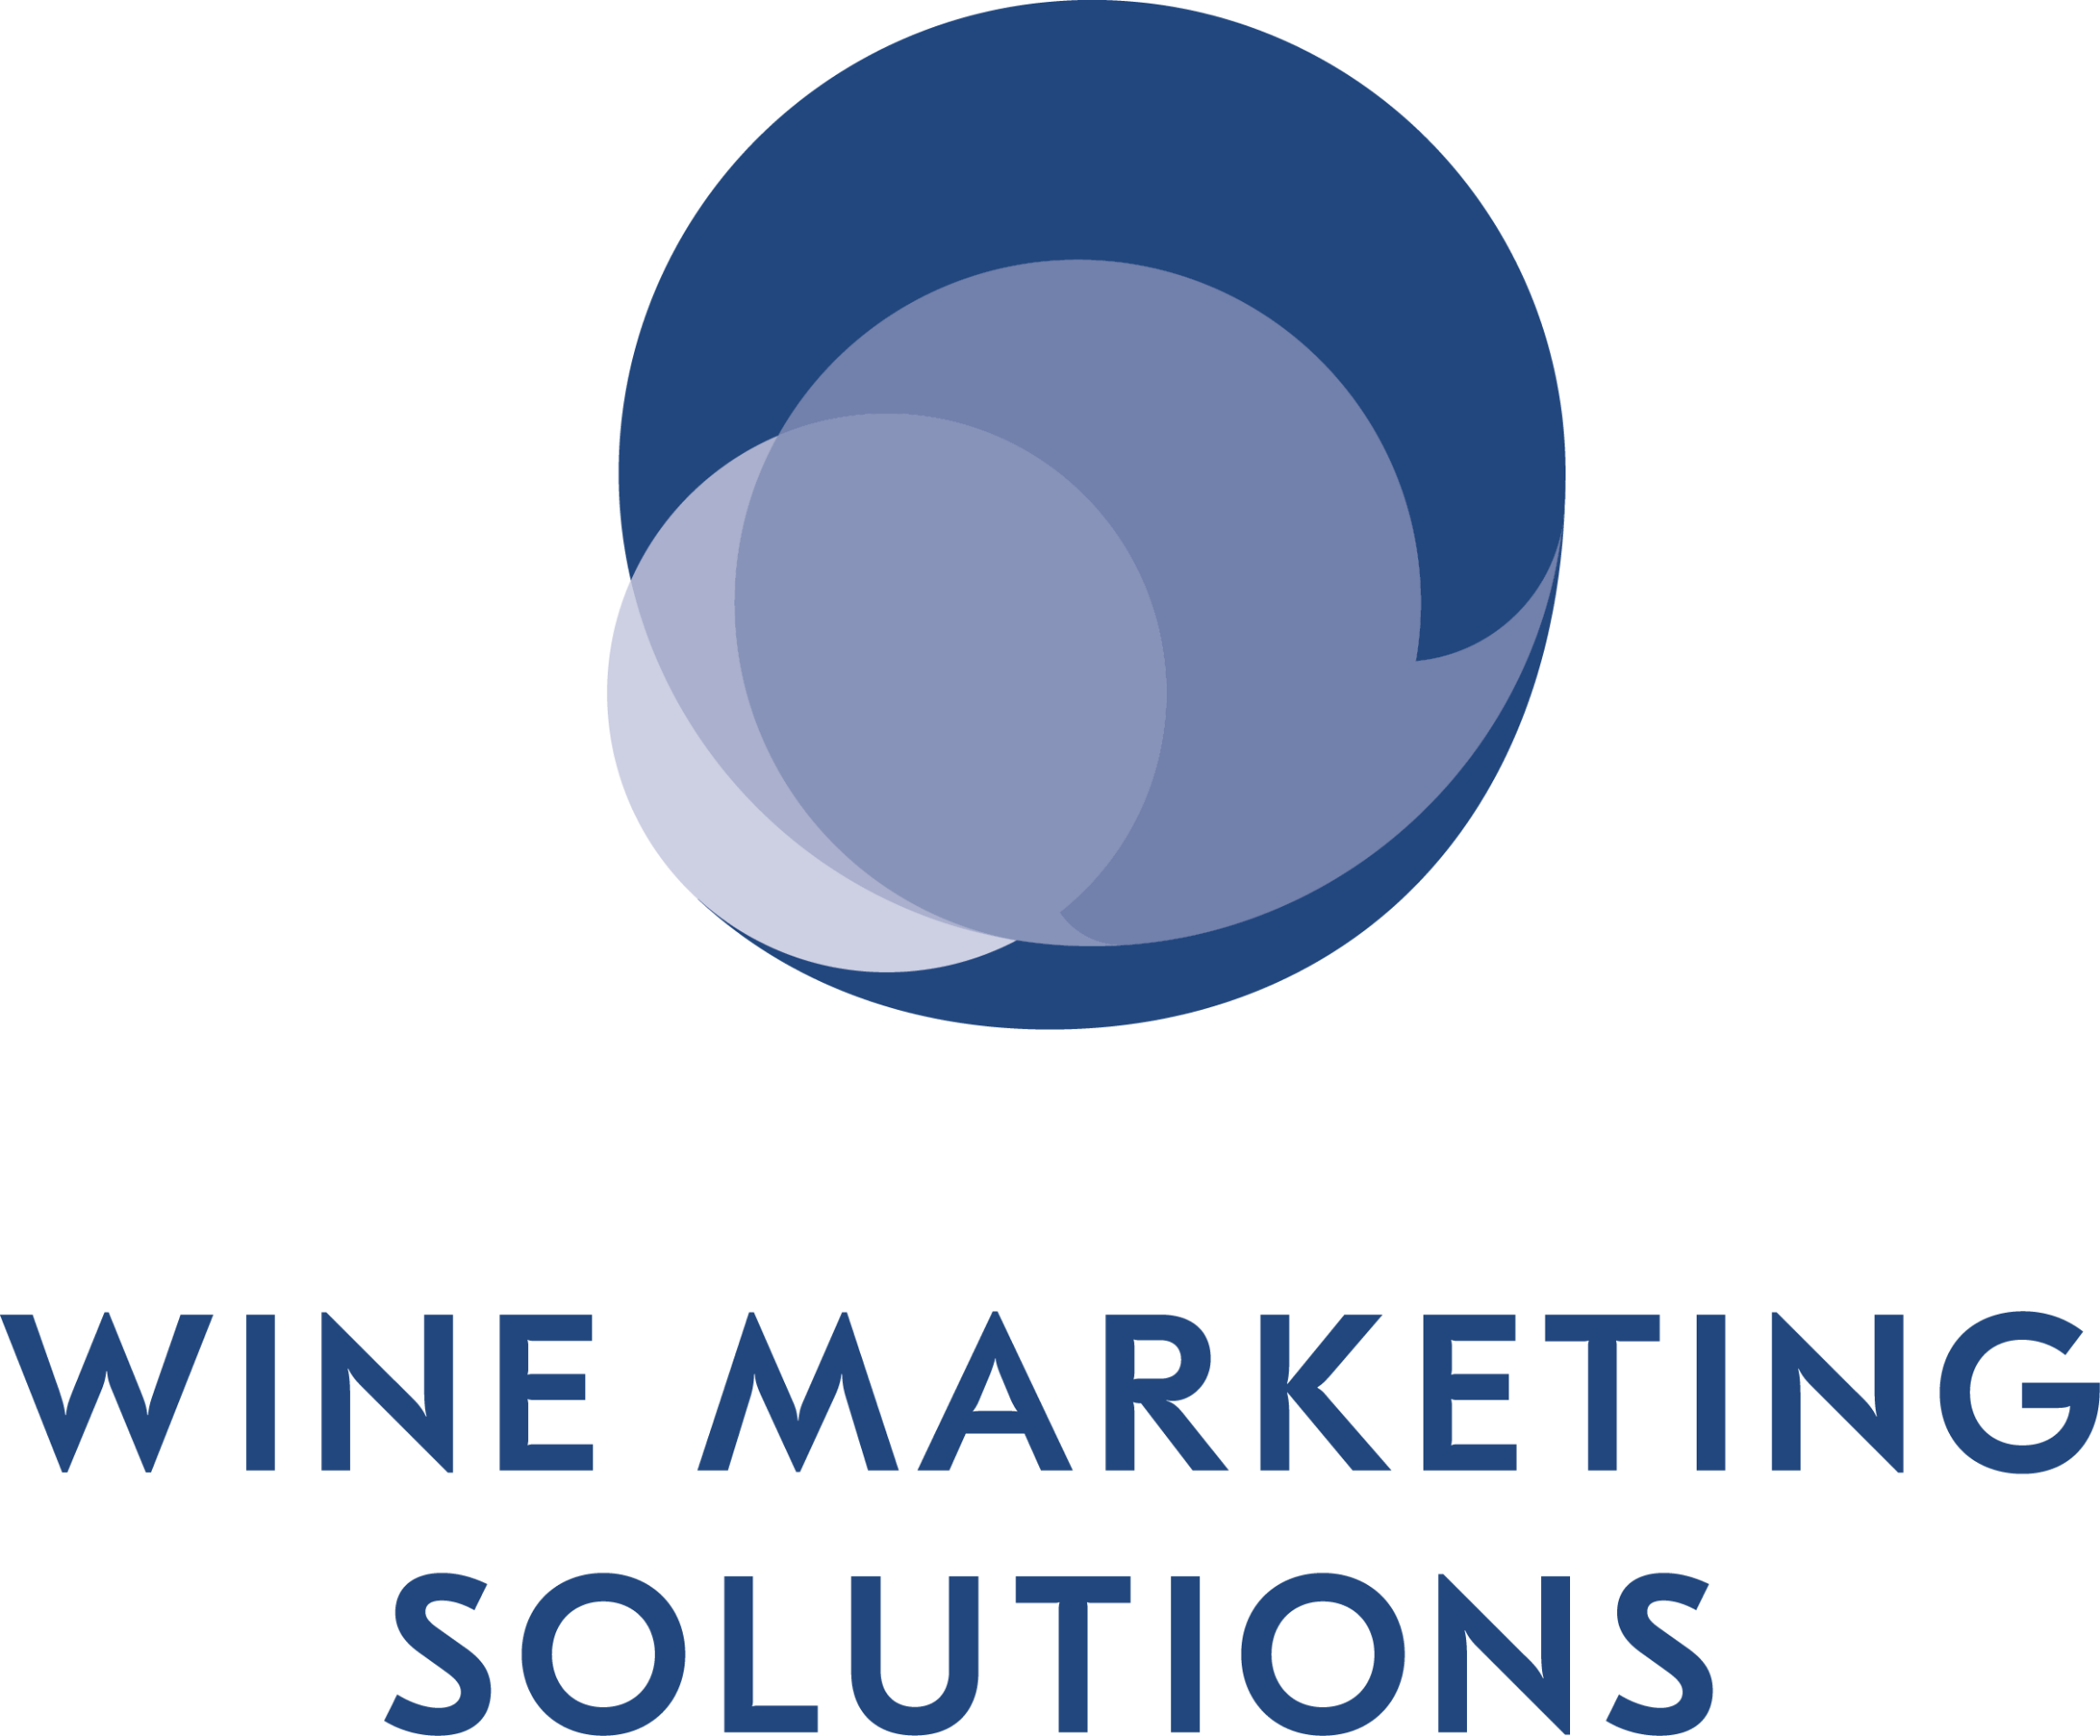 wine-marketing-solutions-colored-blue